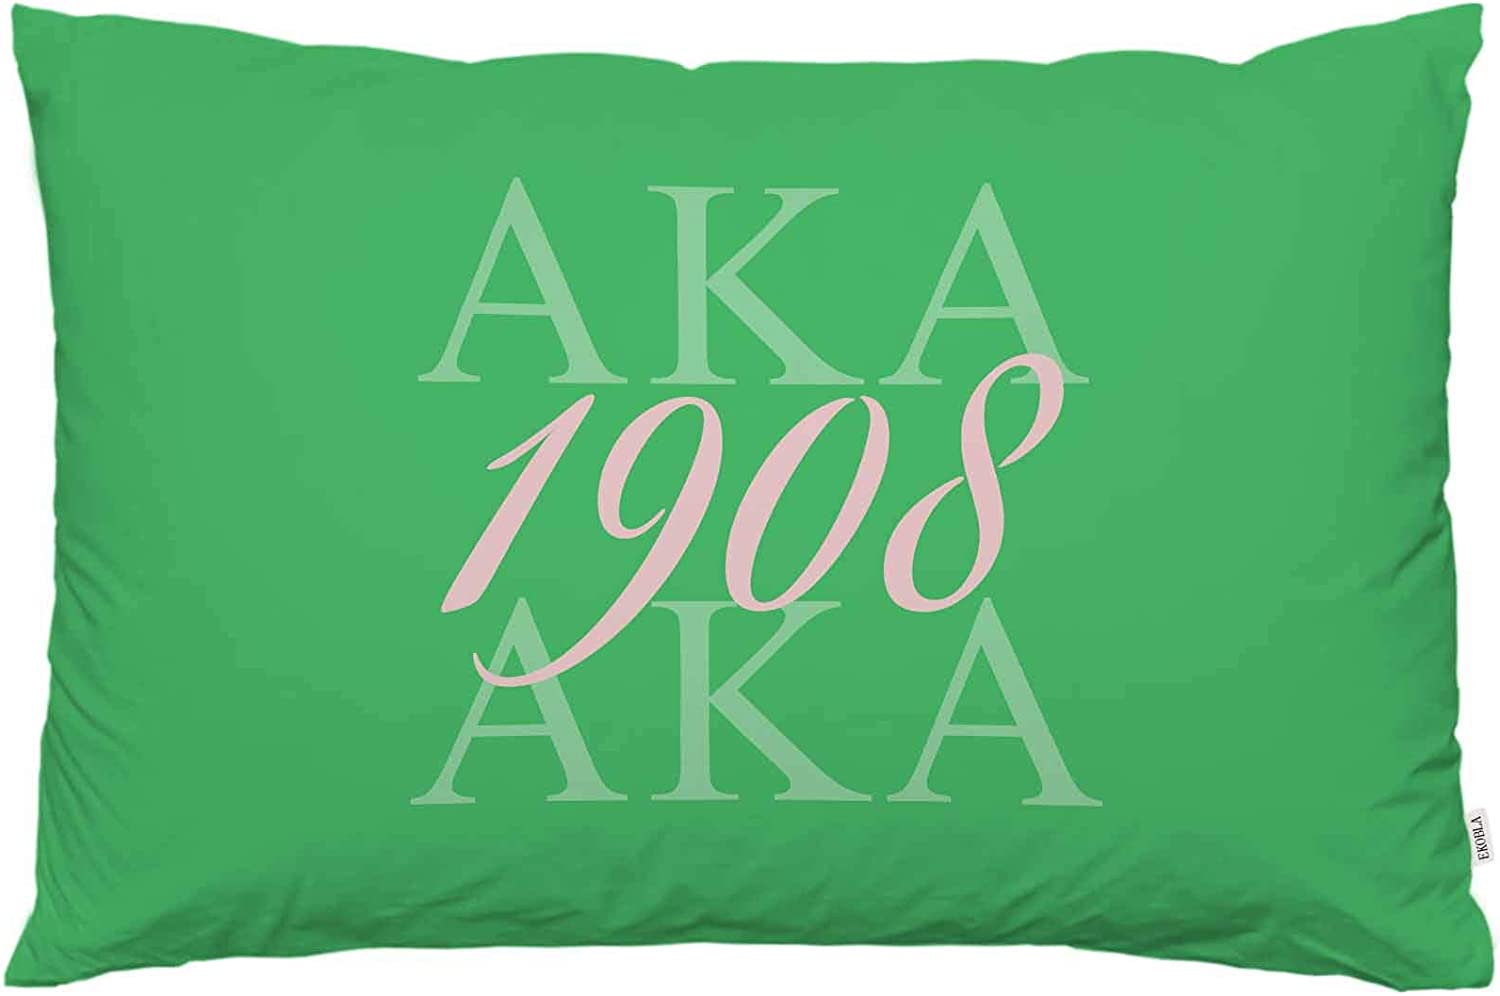 EKOBLA Throw Pillow Cover AKA 1908 As Known As Abbreviation Cool Design Art Hip Hop Style Green Pink Color Abstract Decor Lumbar Pillow Case Cushion for Sofa Couch Bed Standard Queen Size 20x30 Inch